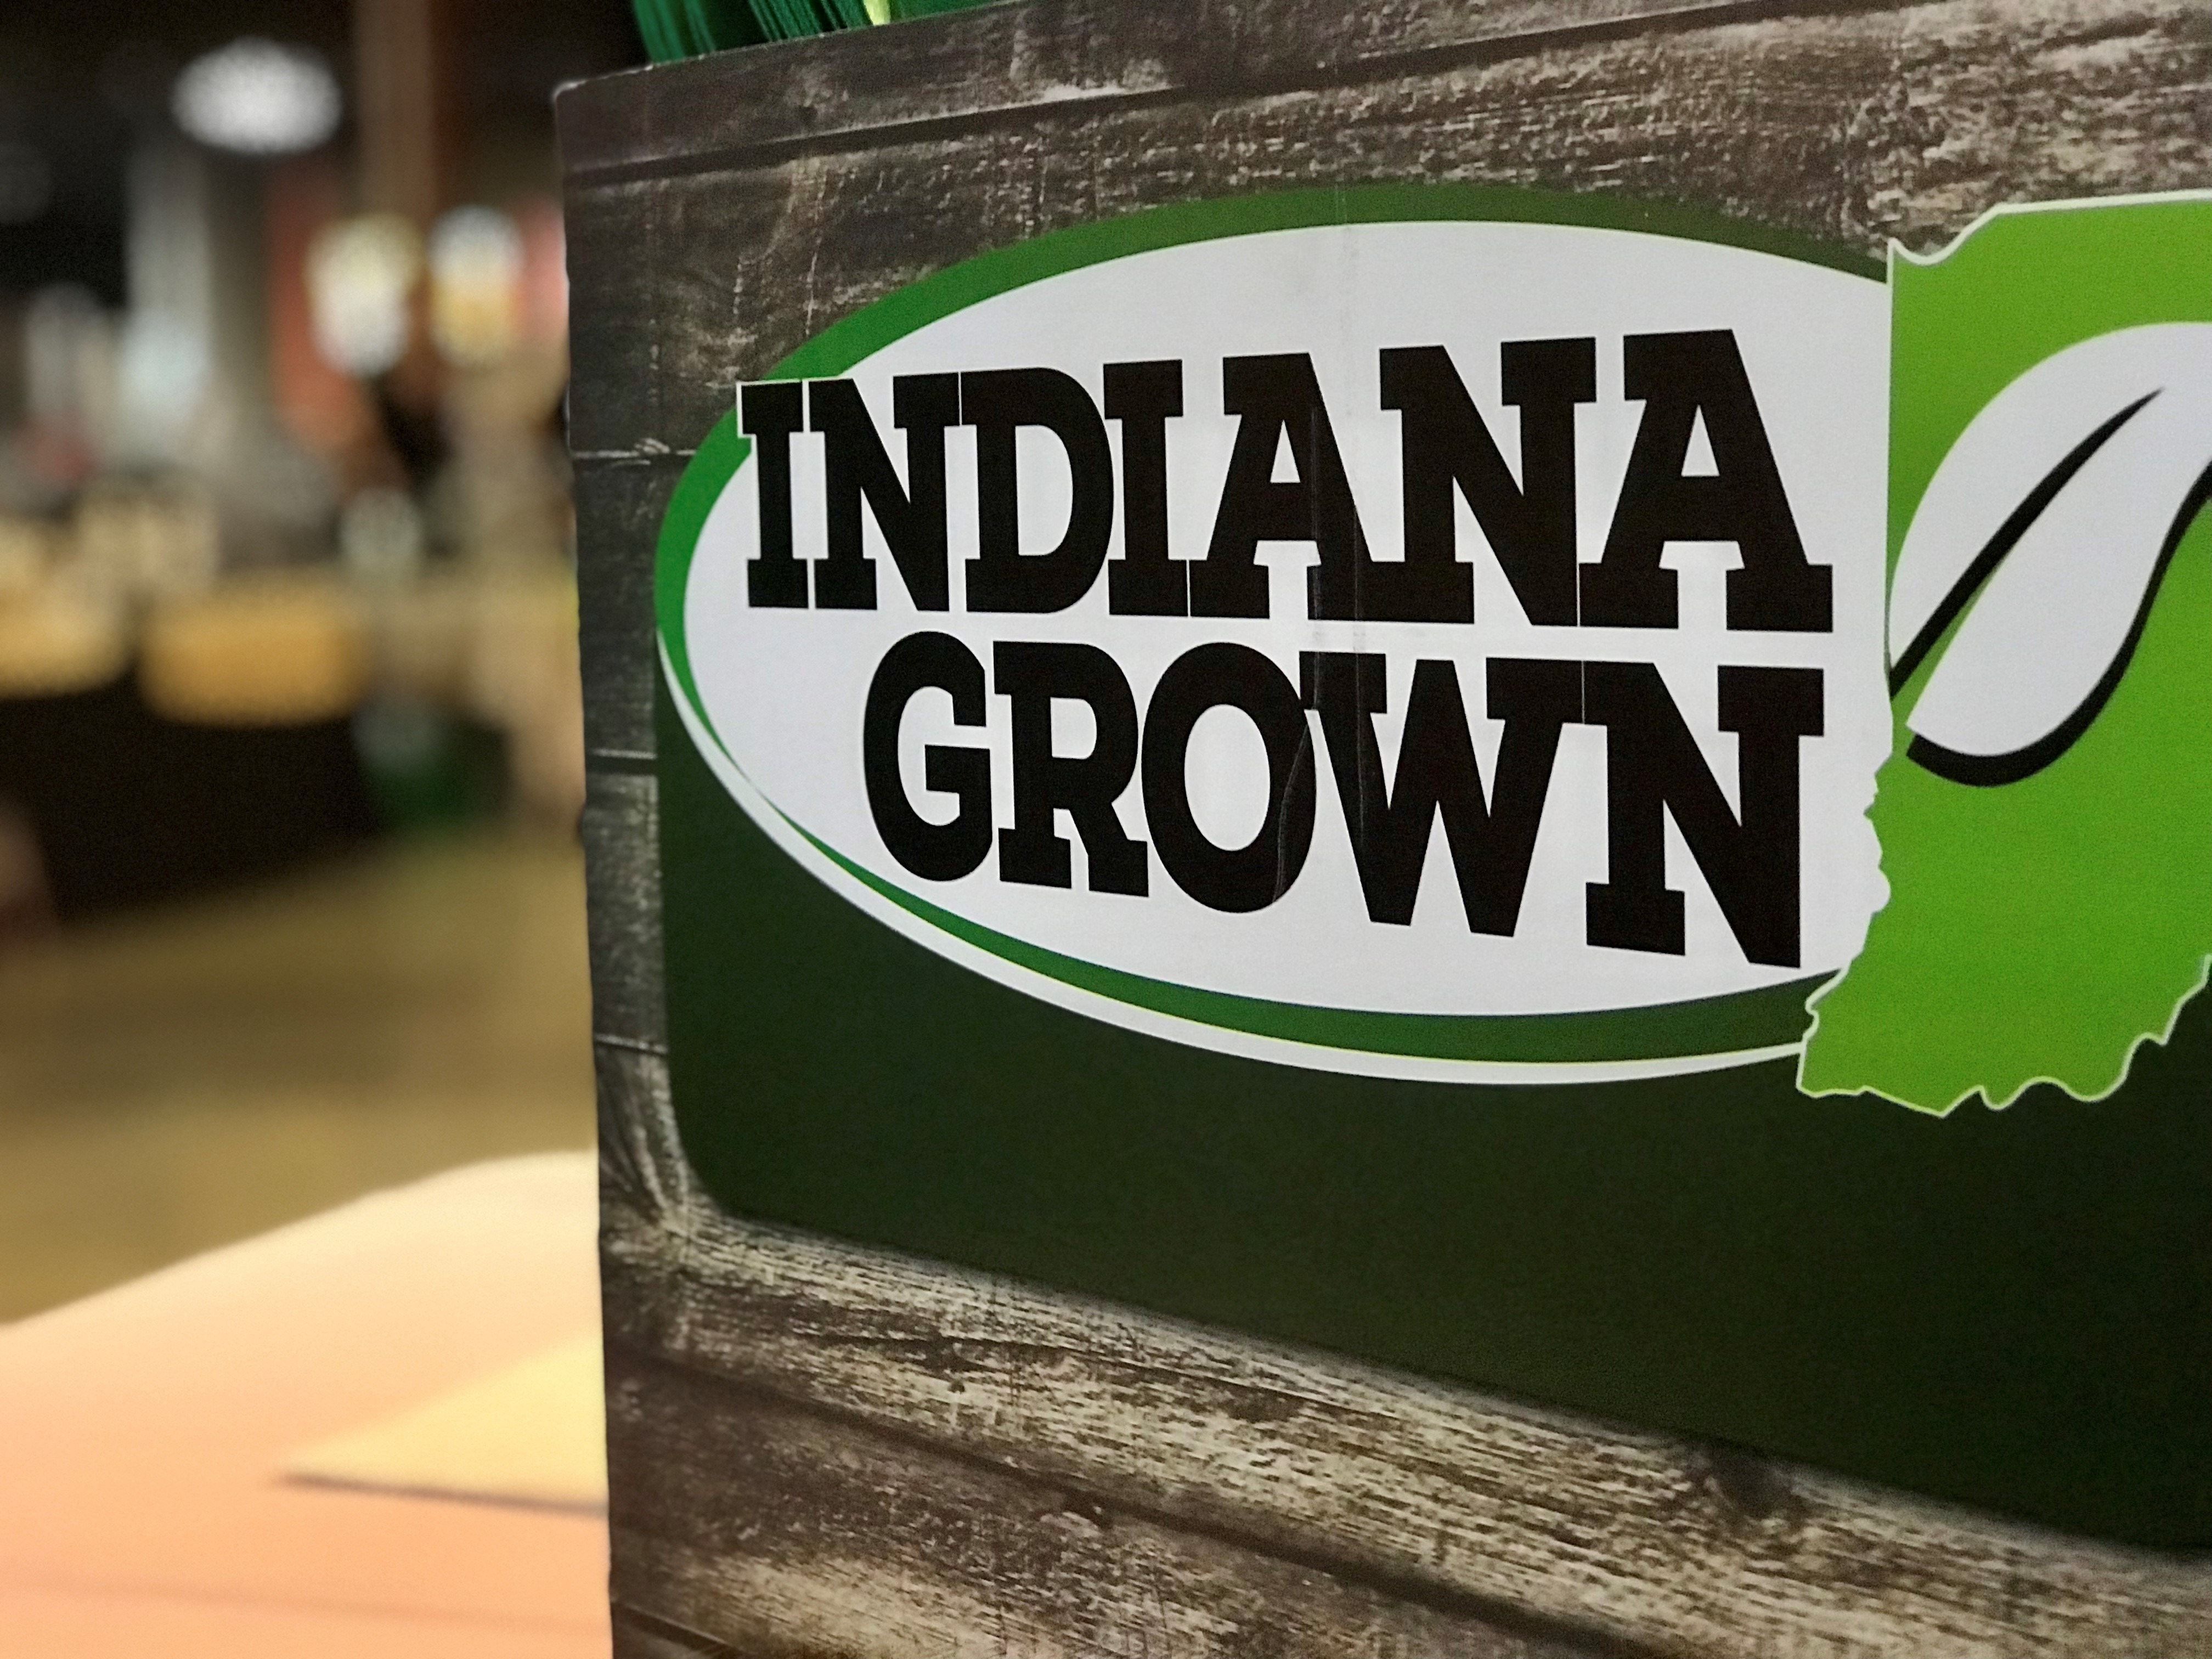 October is Bountiful with New Indiana Grown Members